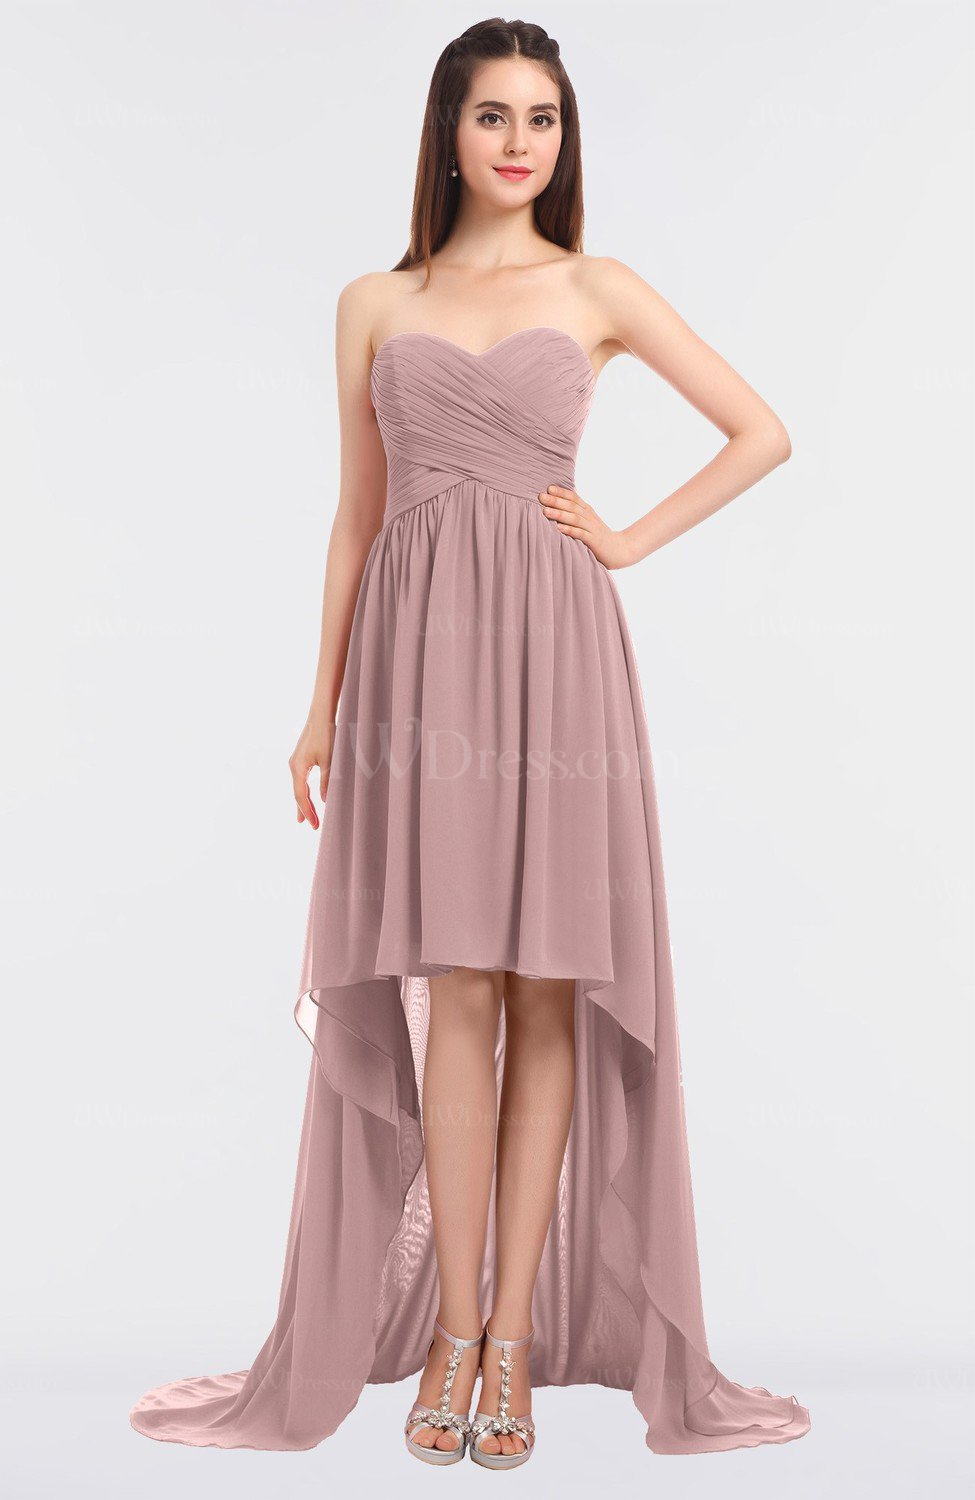 dce6a9910f Pink Silver Bridesmaid Dresses - Data Dynamic AG